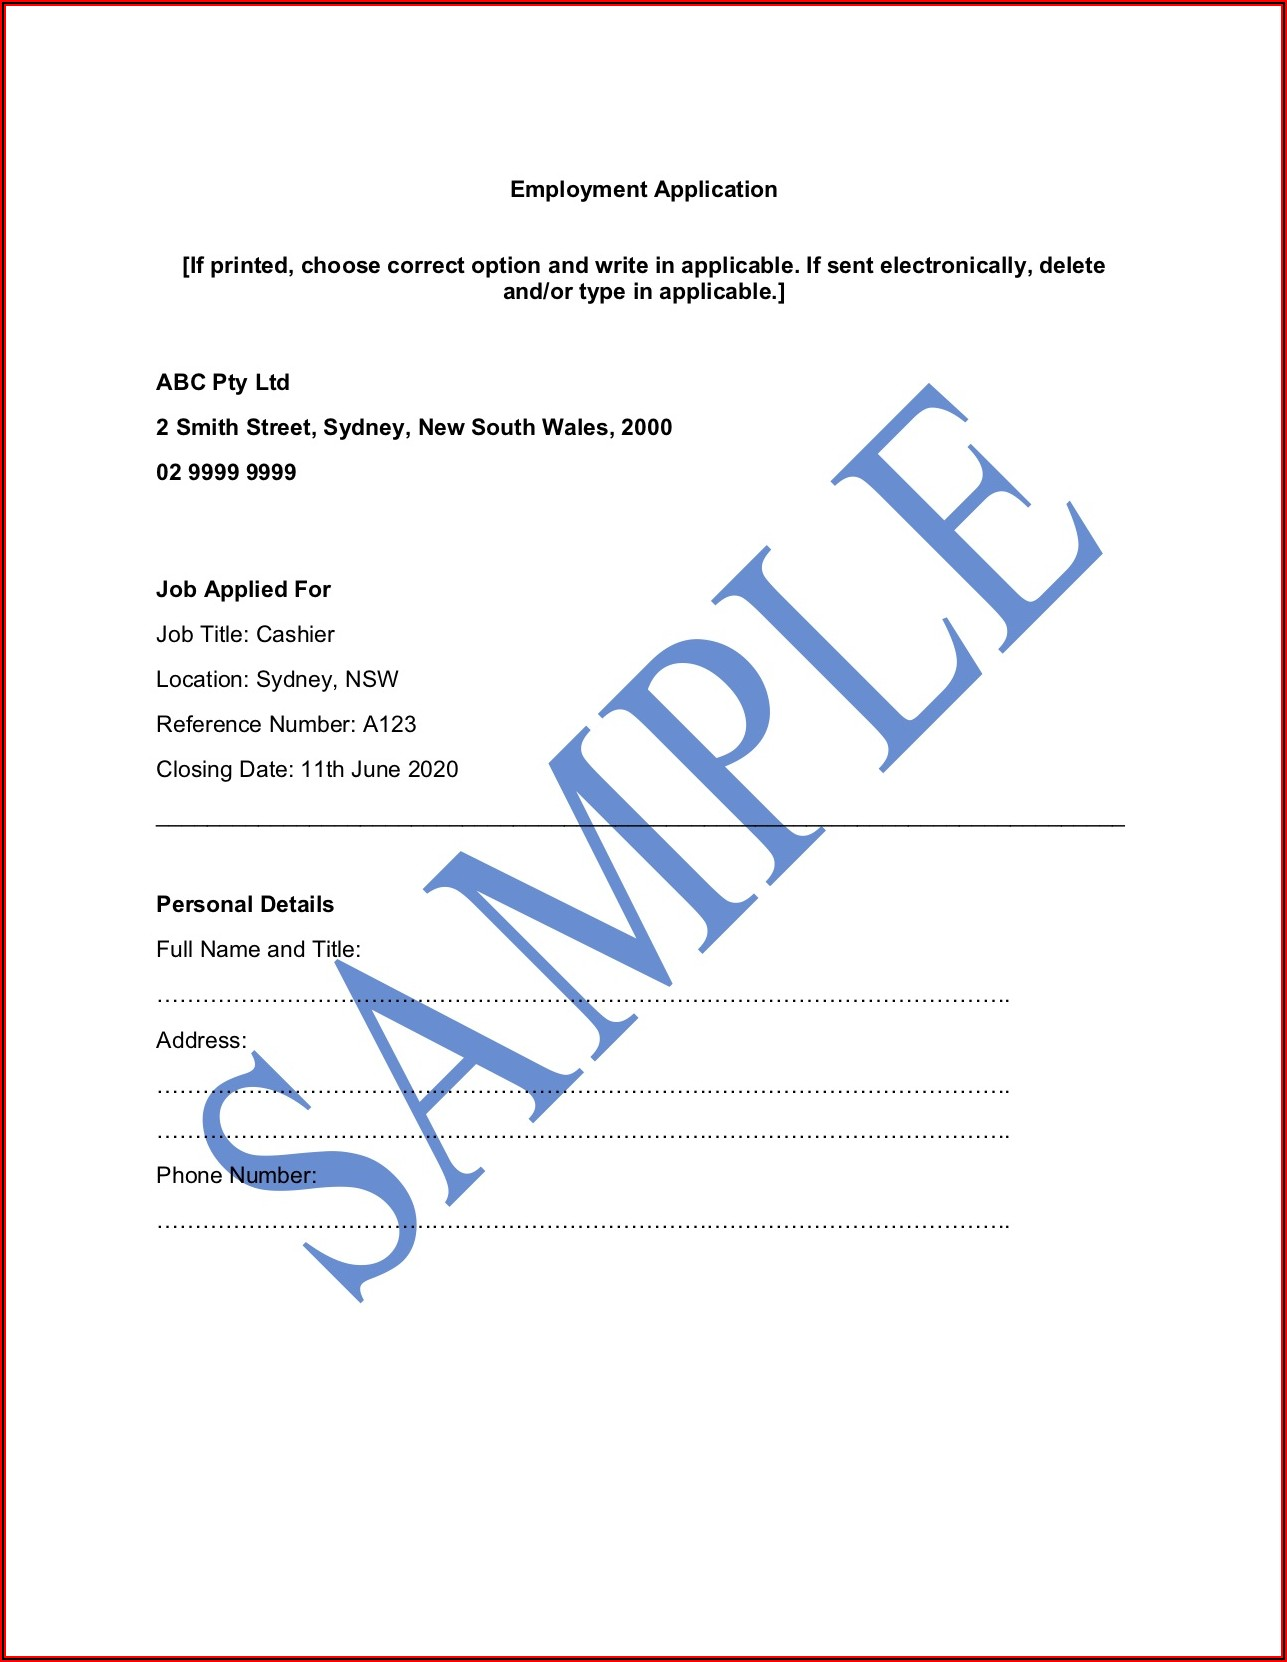 Employment Application Form Template Free